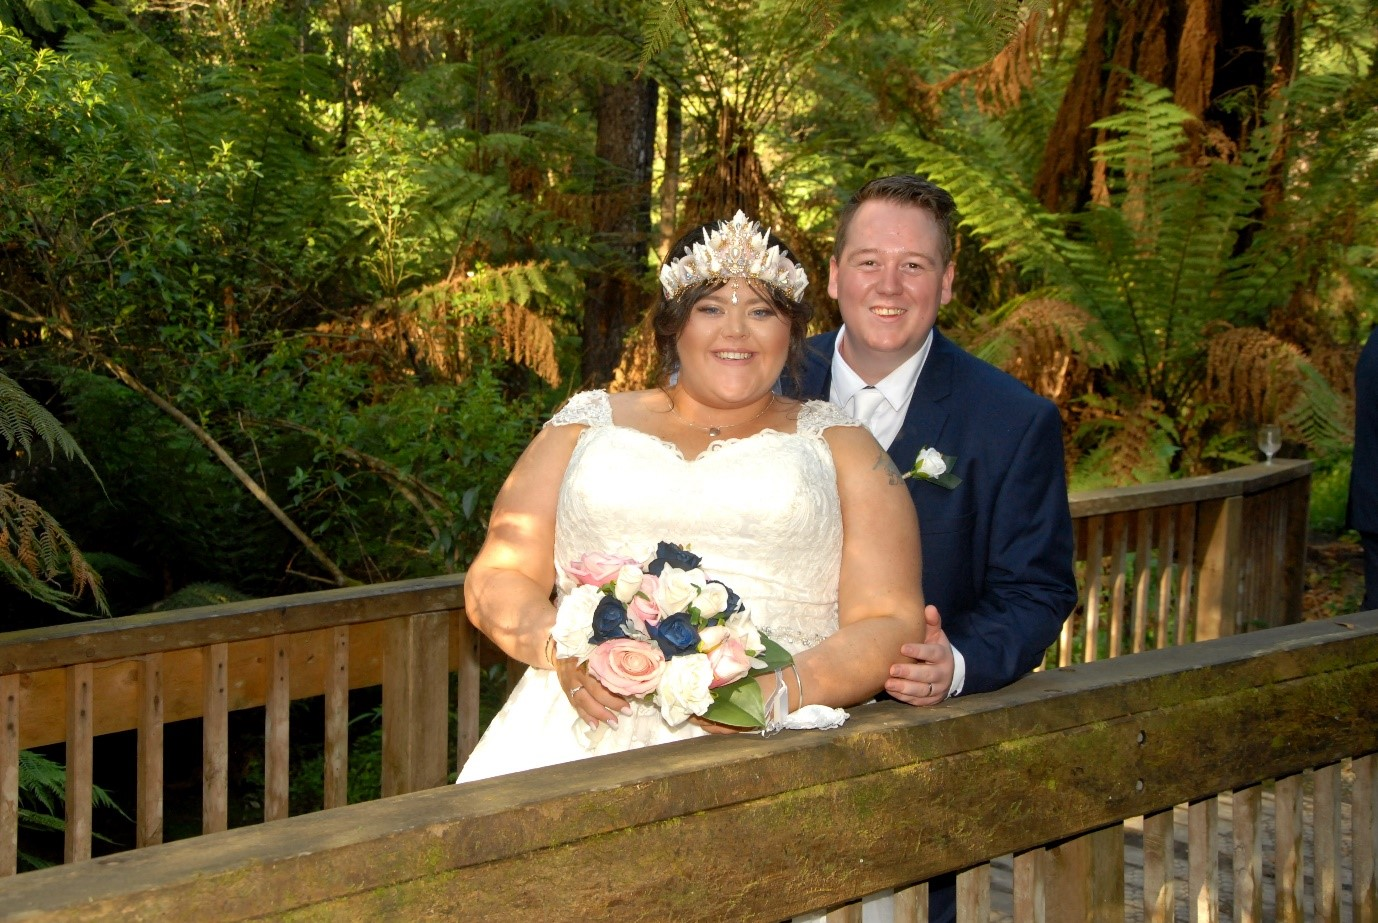 Dandenong Ranges Celebrant - Sara and Kyle's Wedding Day